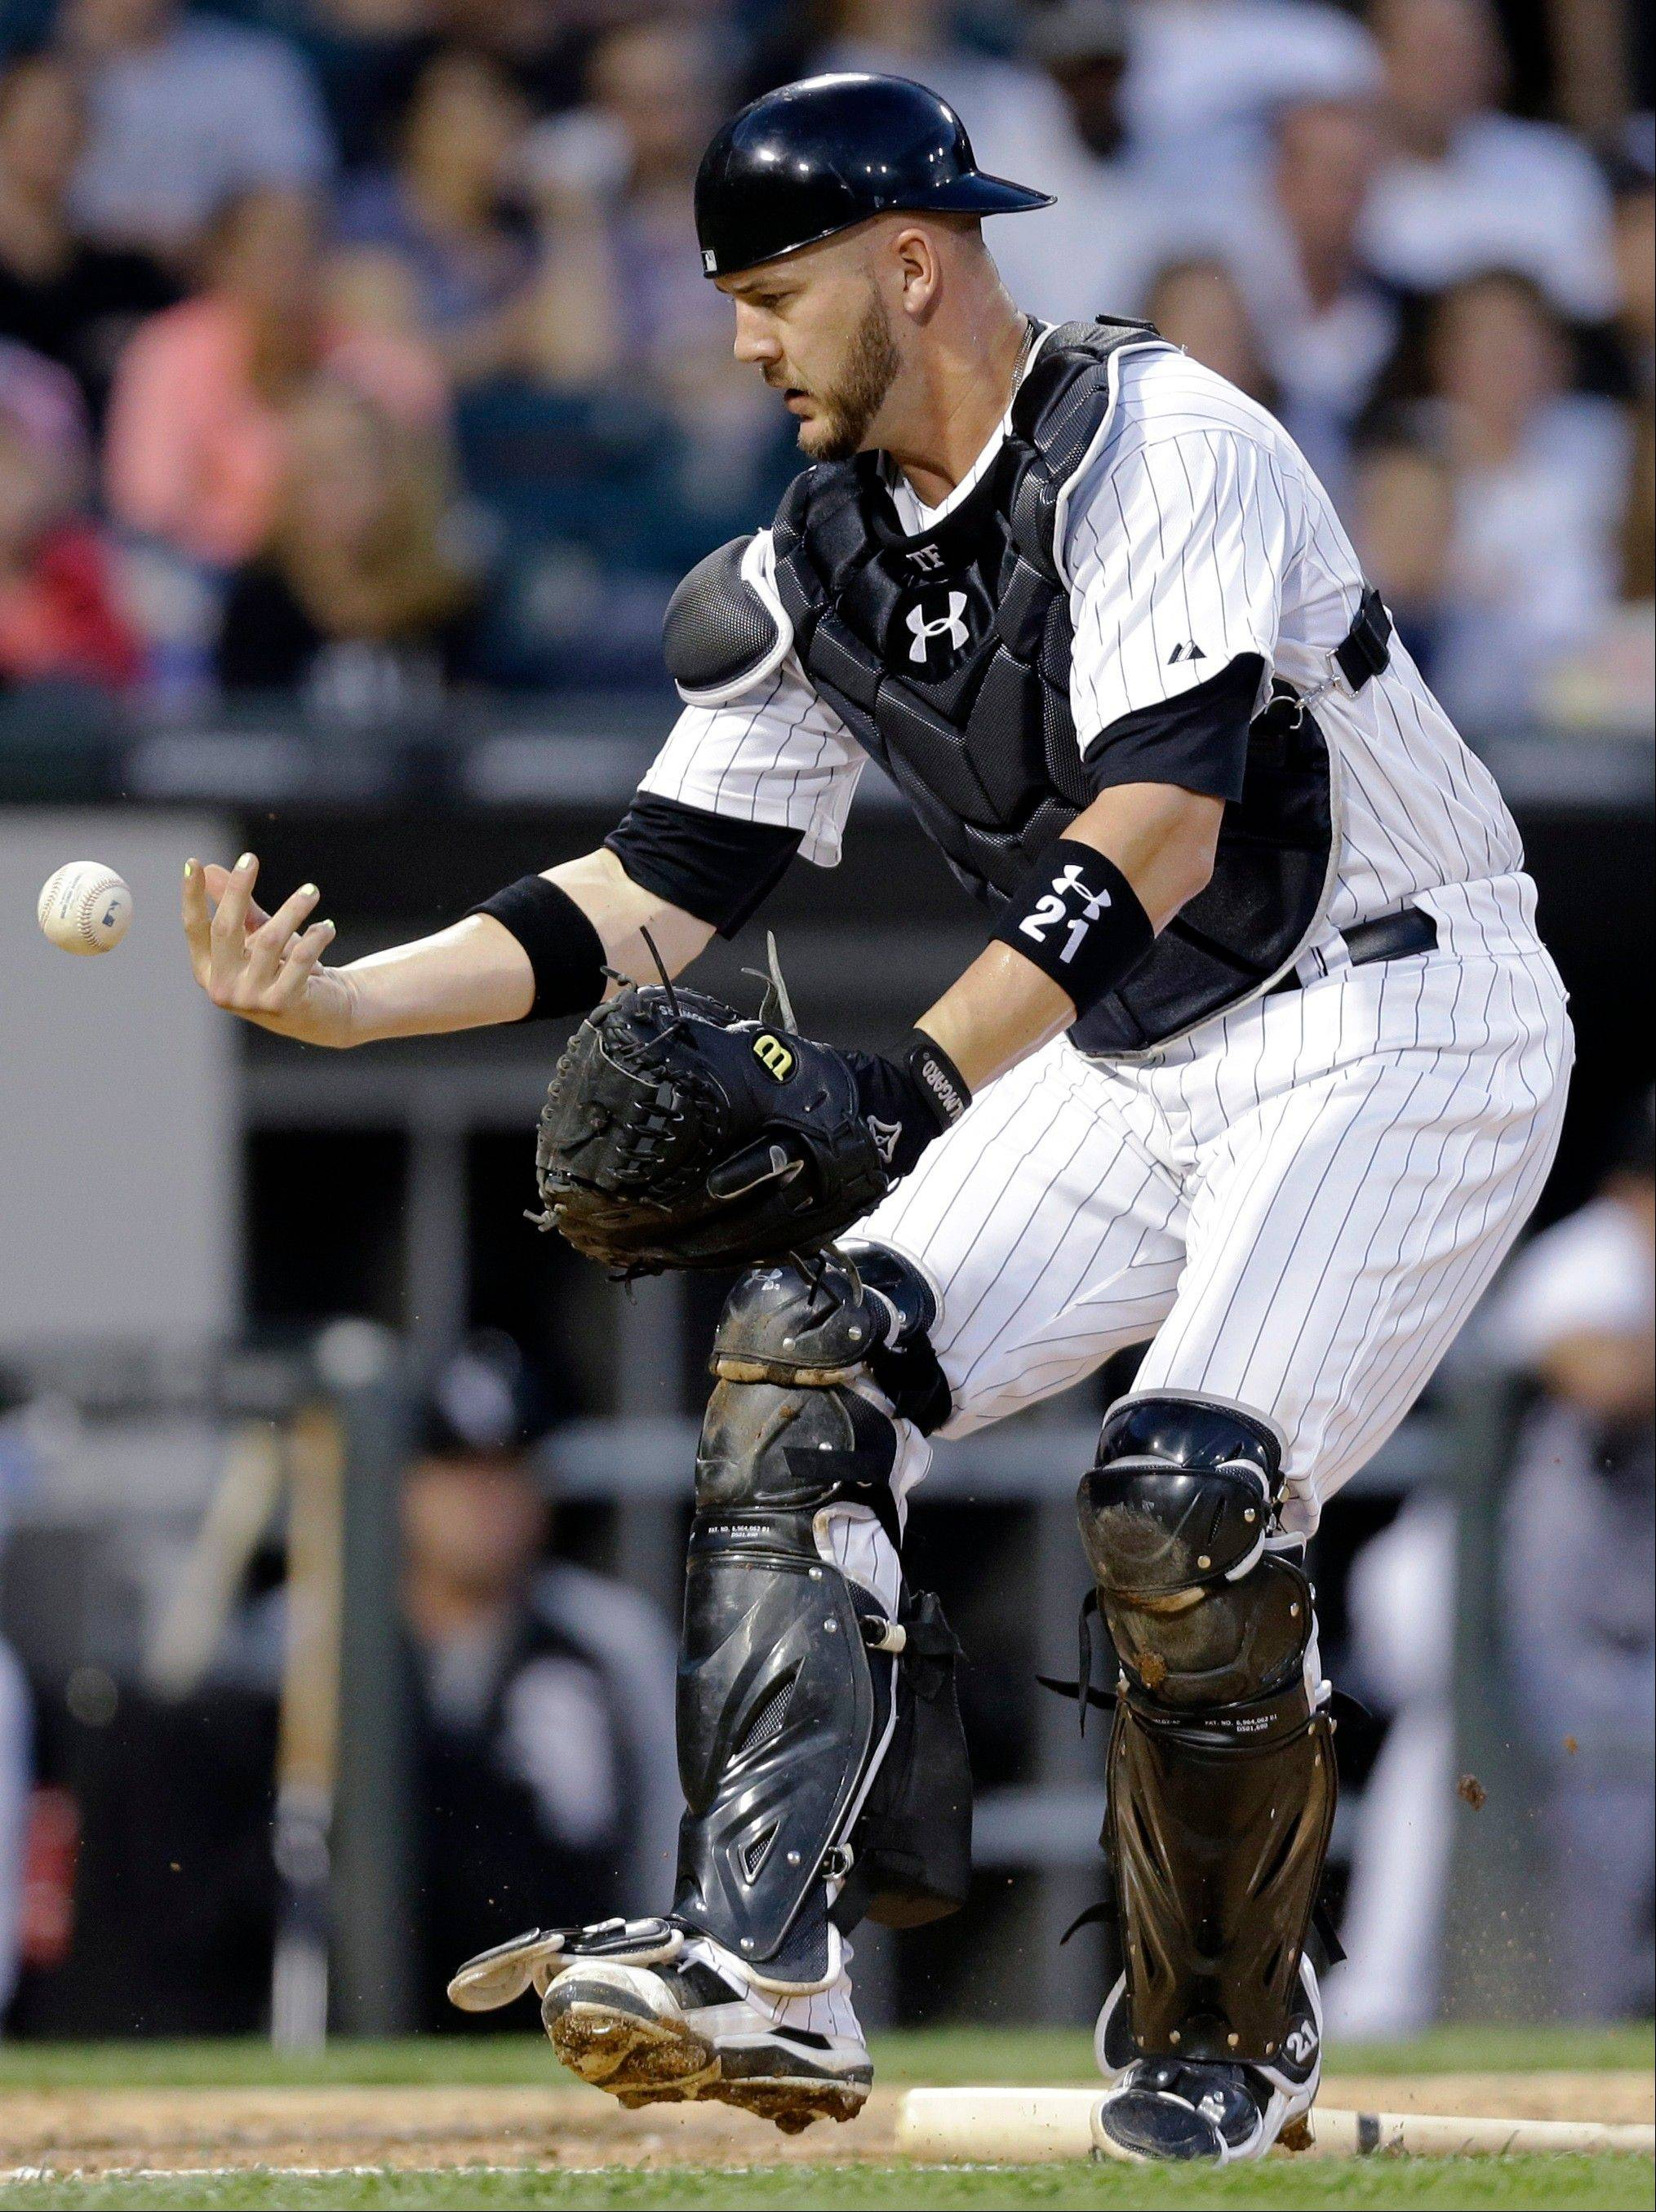 White Sox catcher Tyler Flowers can't make the play on a foul hit by New York Mets' Omar Quintanilla during the fifth inning of an interleague baseball game Wednesday, June 26, 2013, in Chicago. Quintanilla grounded out on the at-bat.